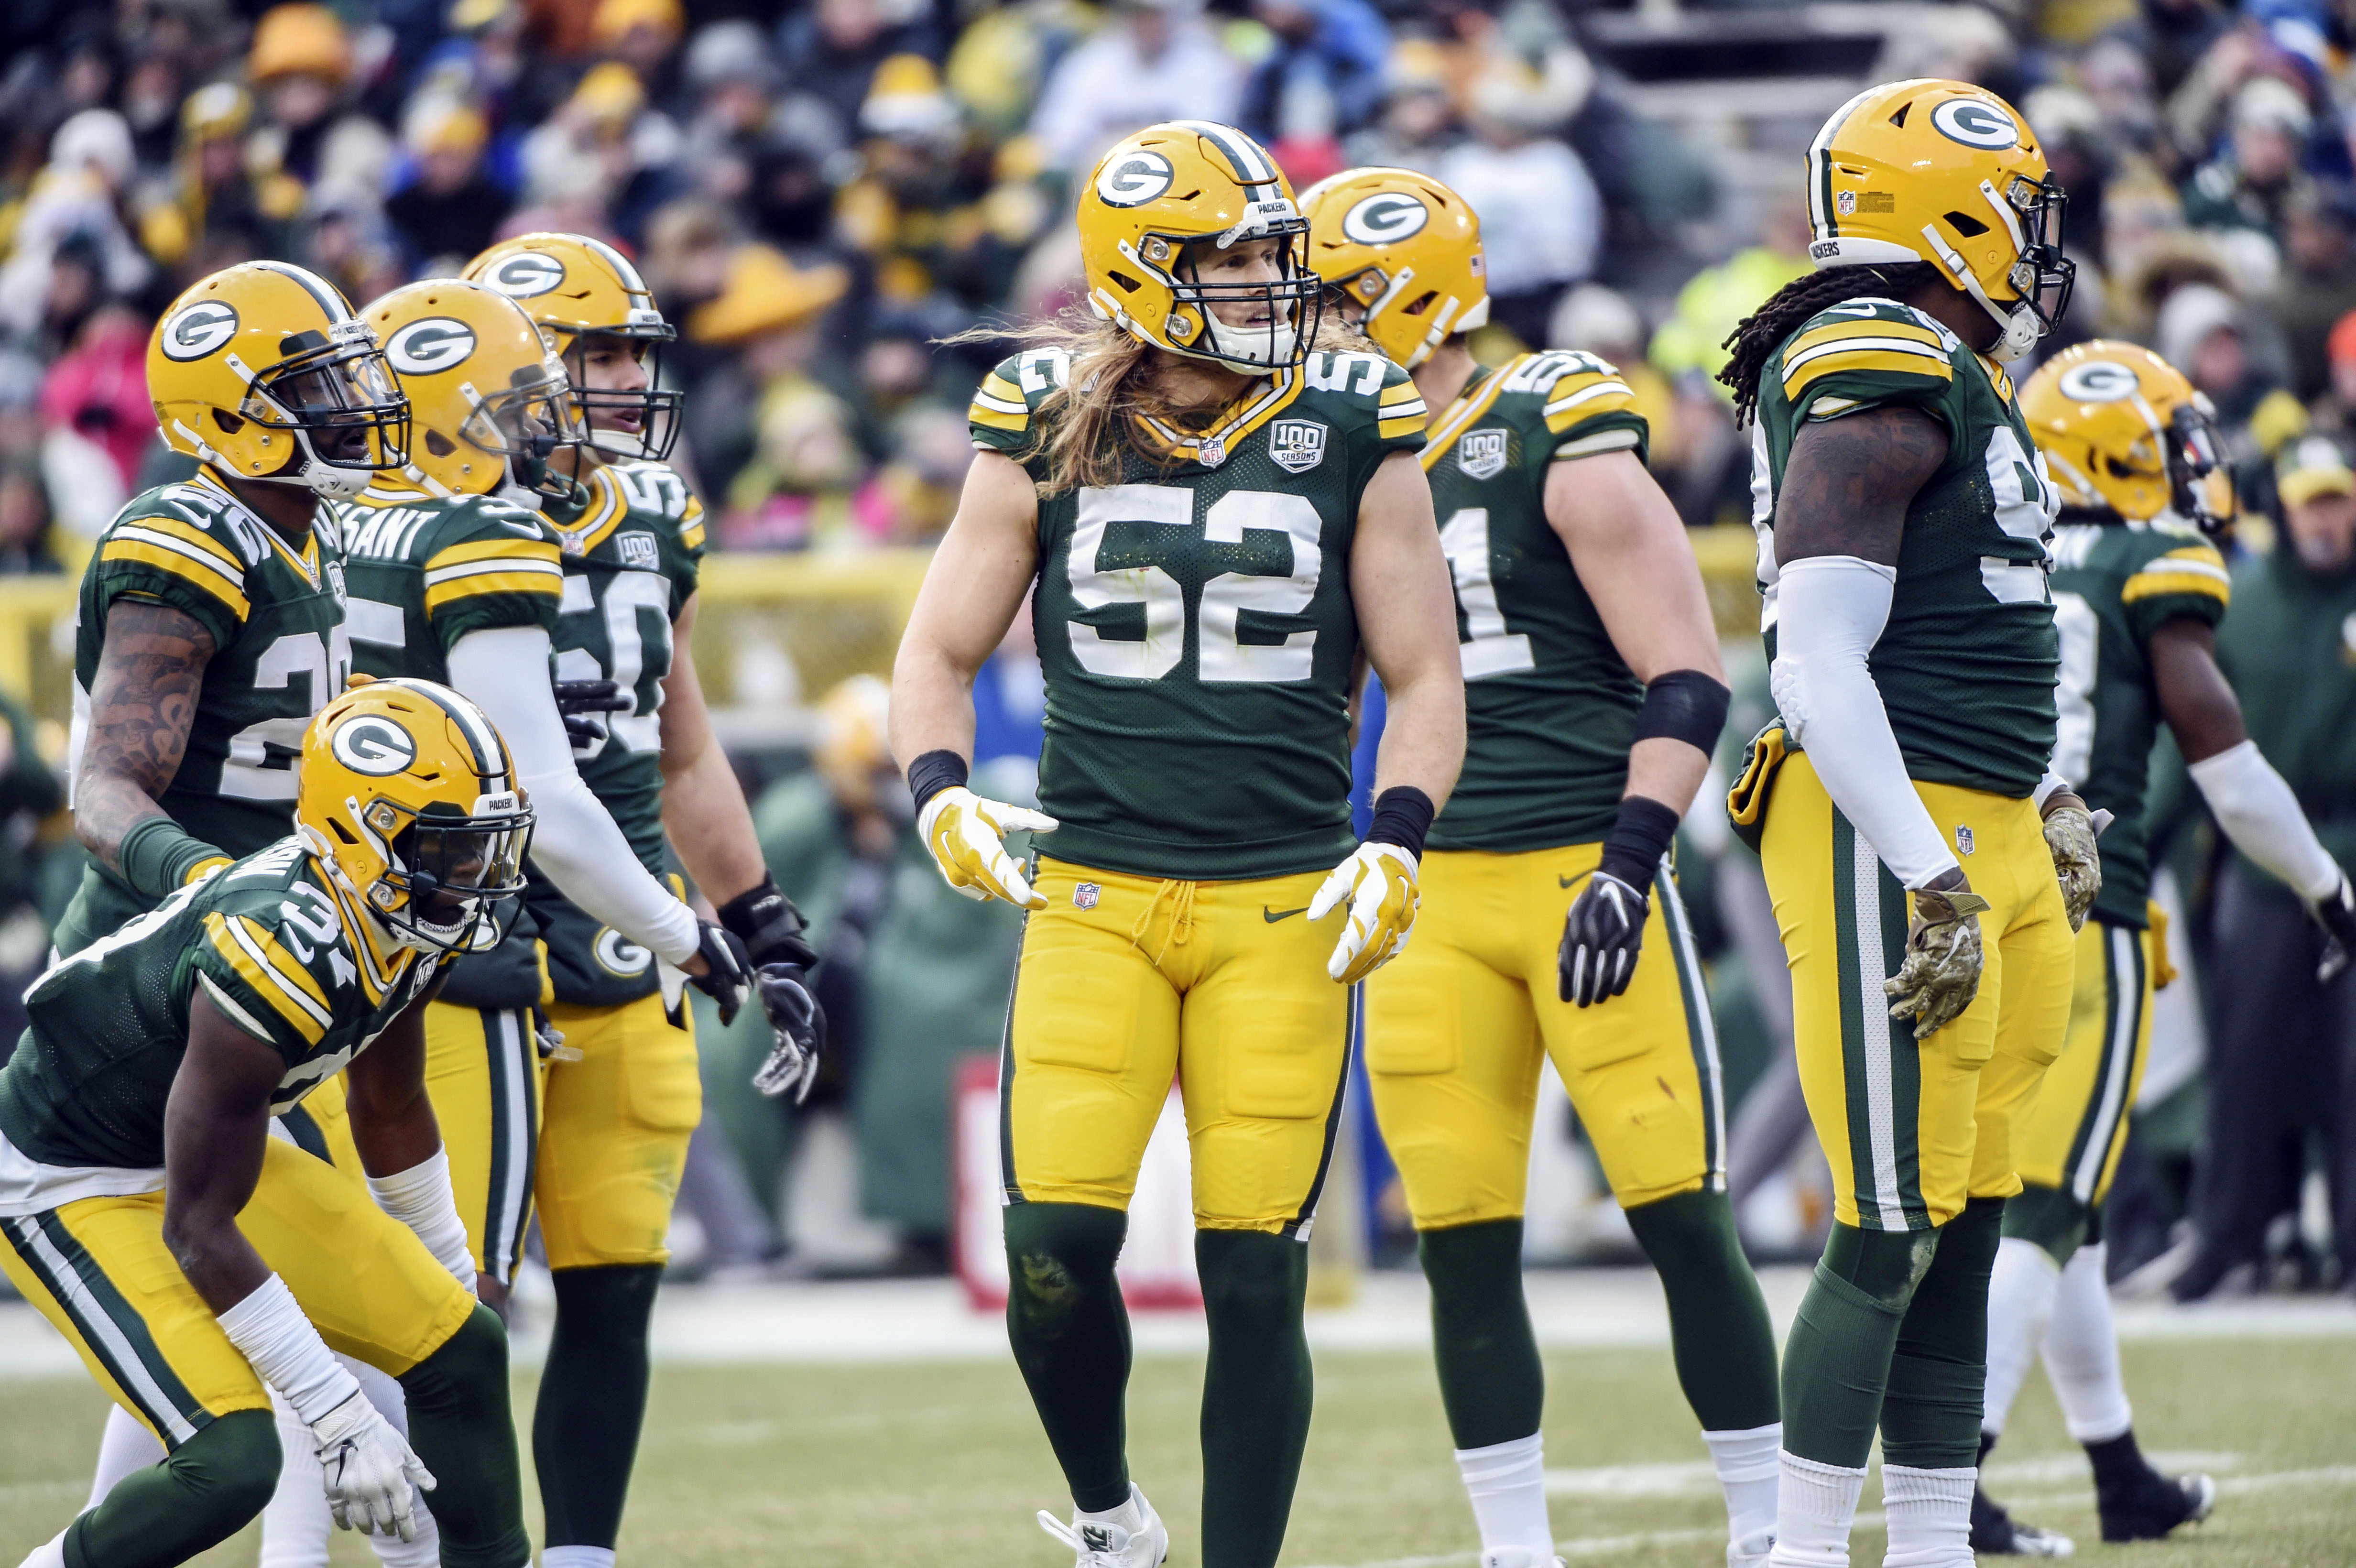 Packers Free Agents: Should They Stay or Should They Go?